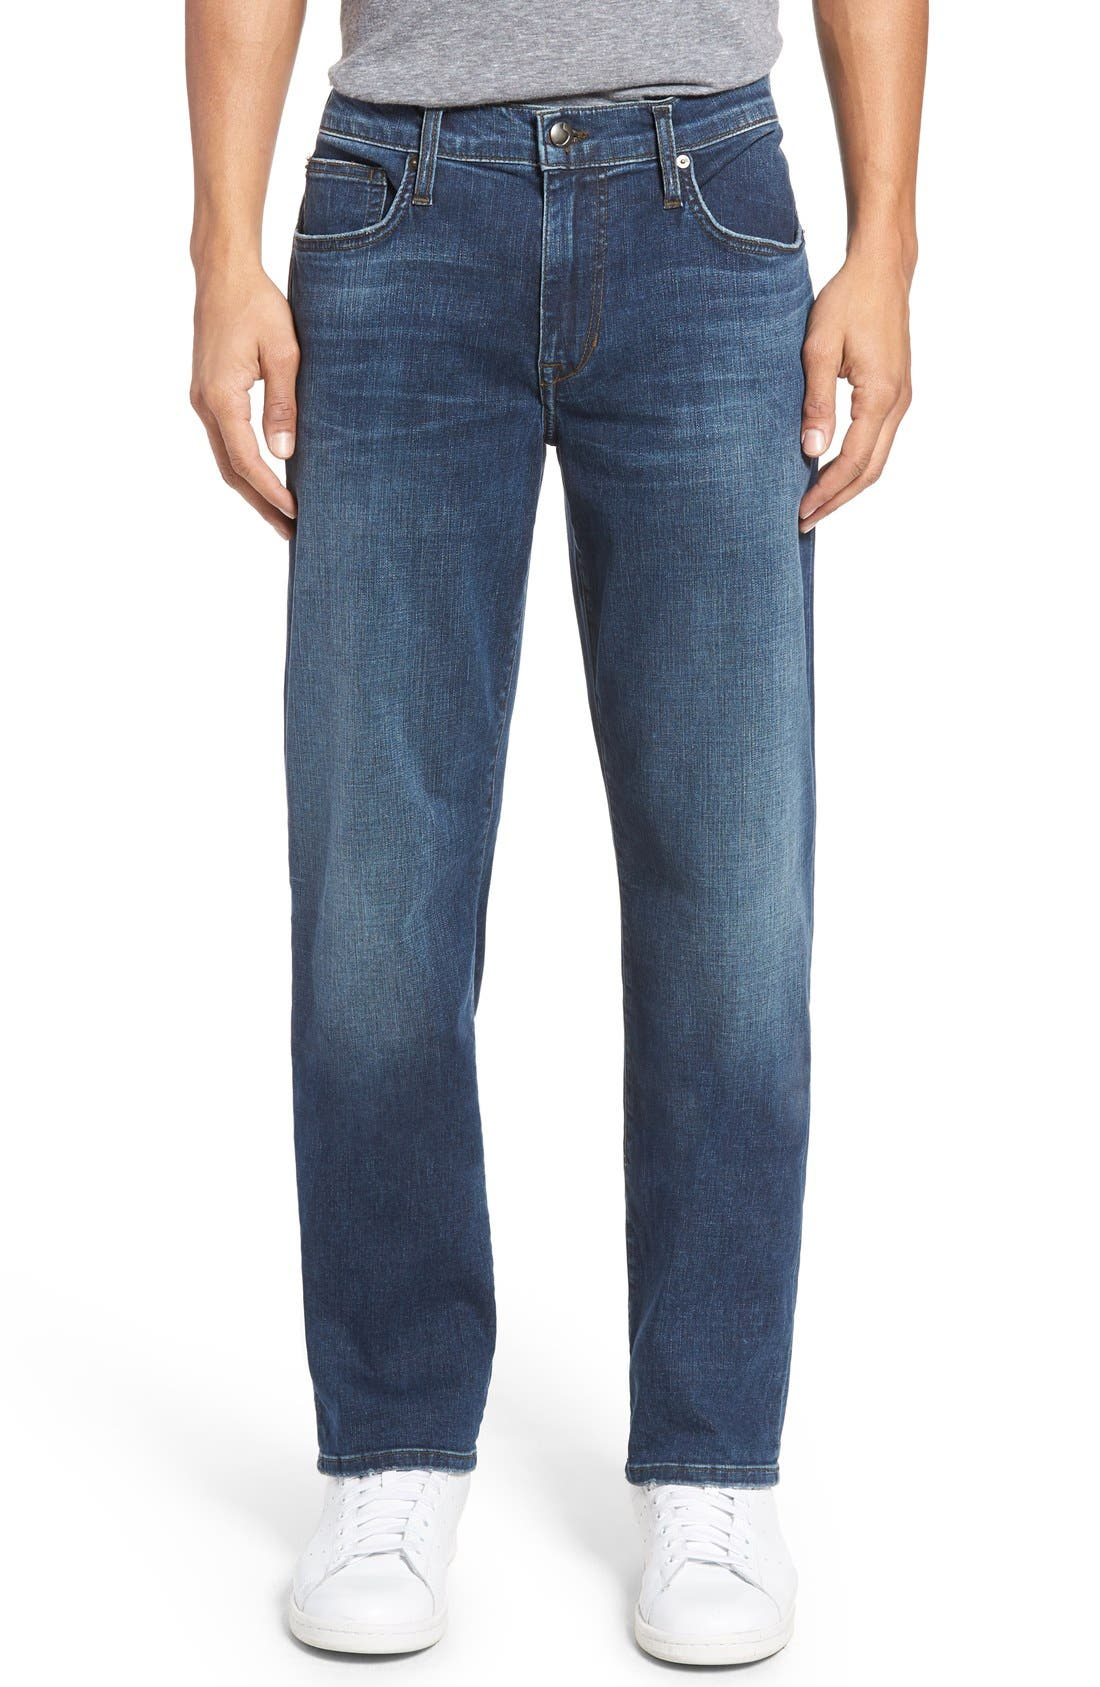 Brixton Slim Fit Jeans,                         Main,                         color, 400